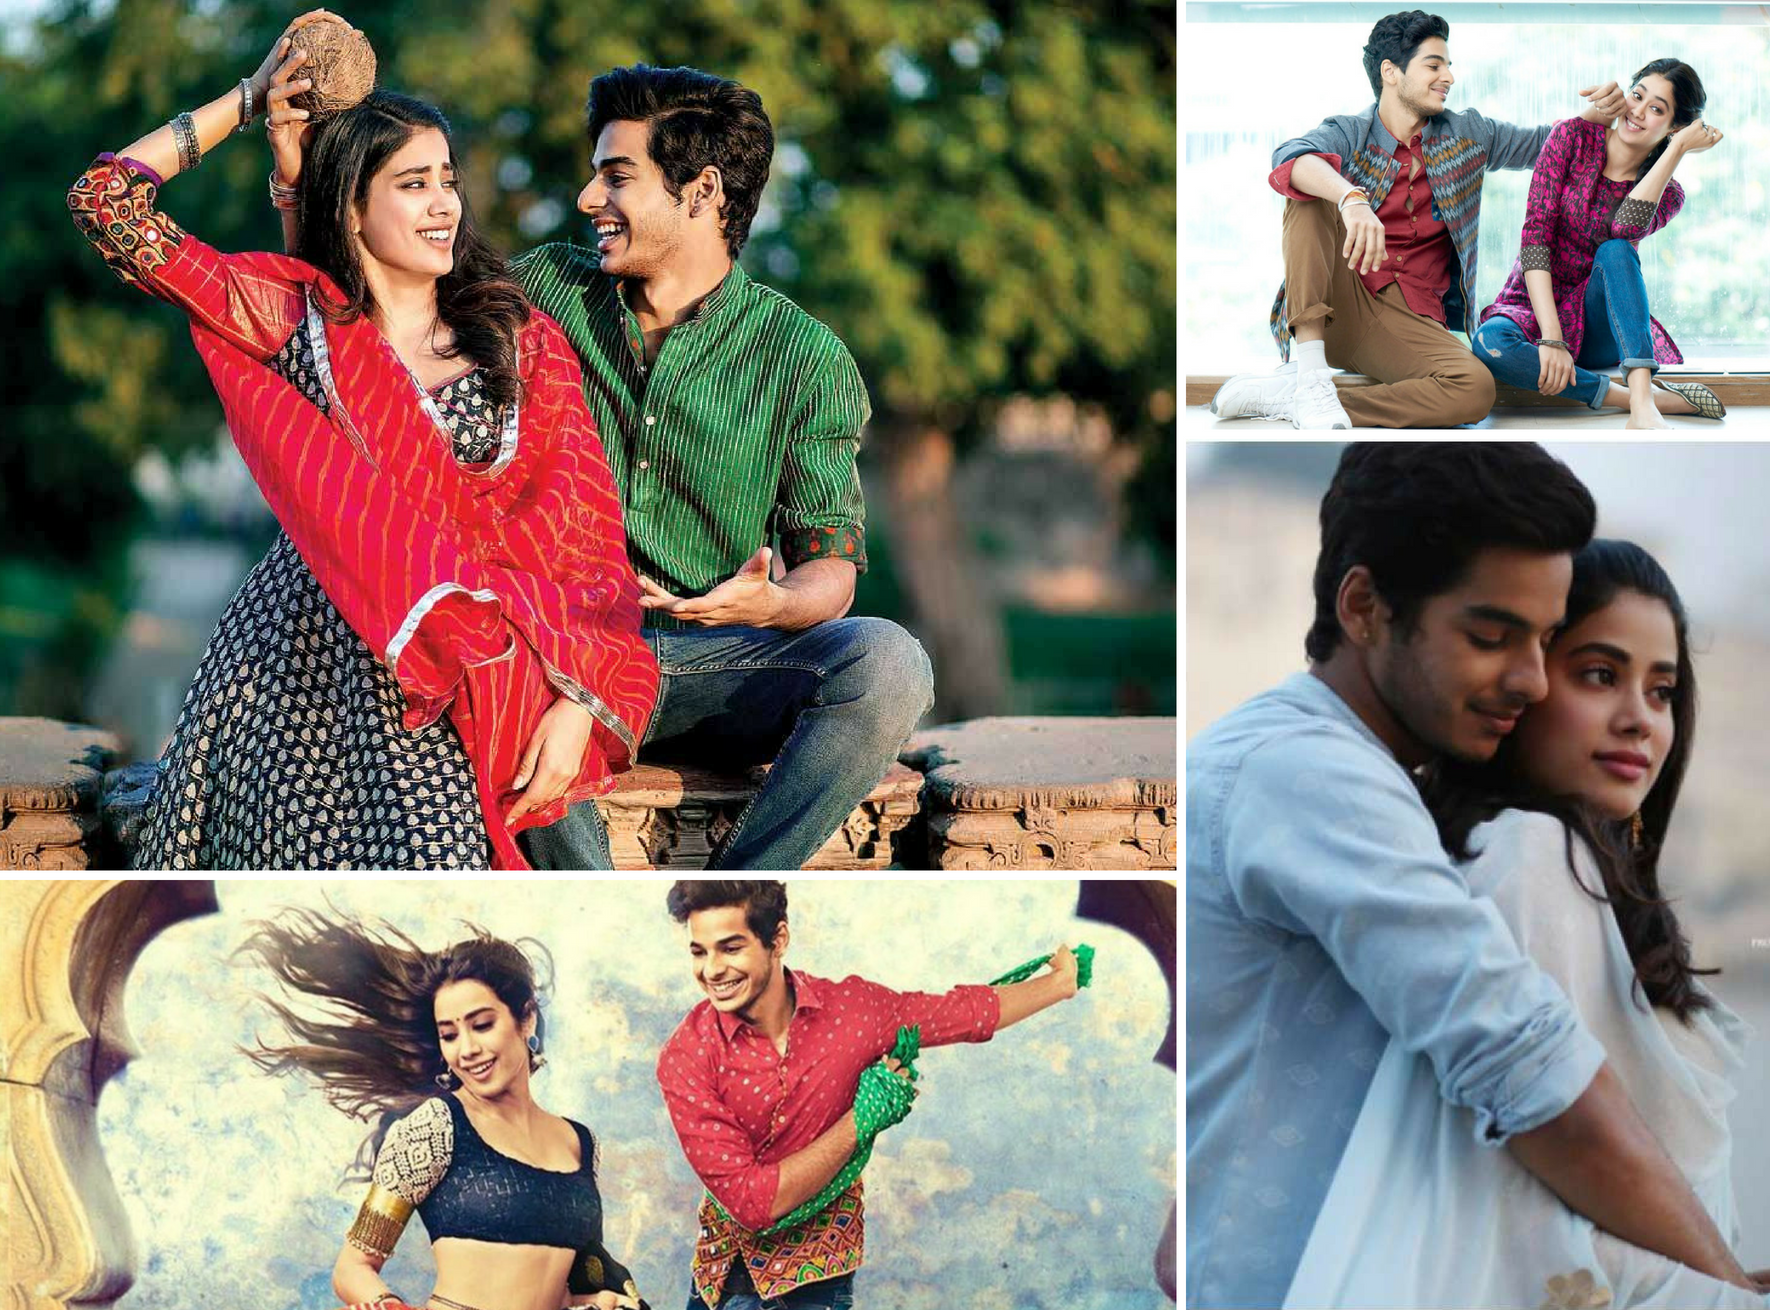 Mesmerizing Moments From The Dhadak Trailer